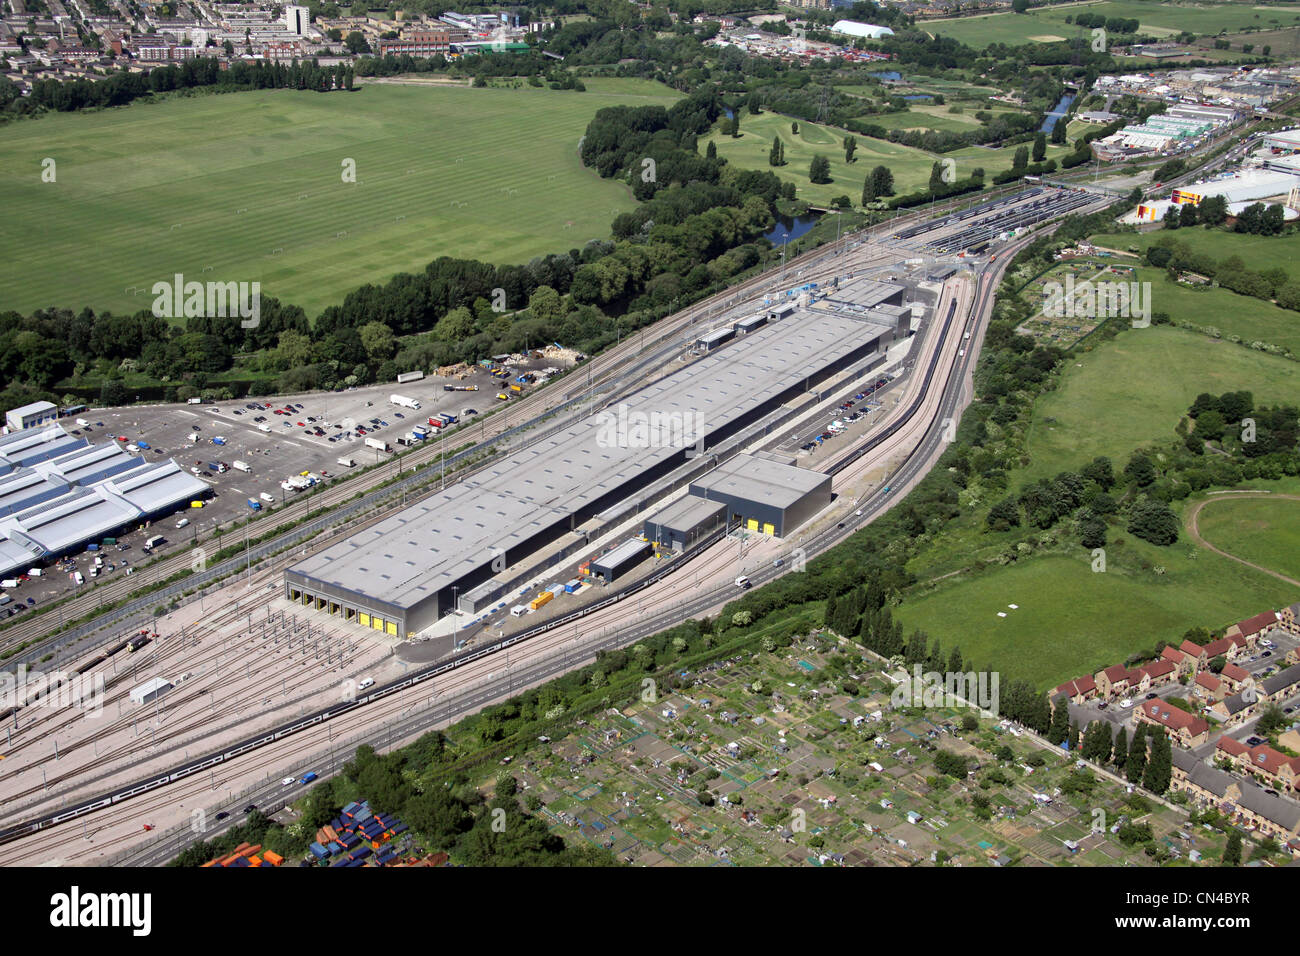 Aerial view of the Eurostar Engineering Centre Temple Mills, Leyton, London E10 - Stock Image